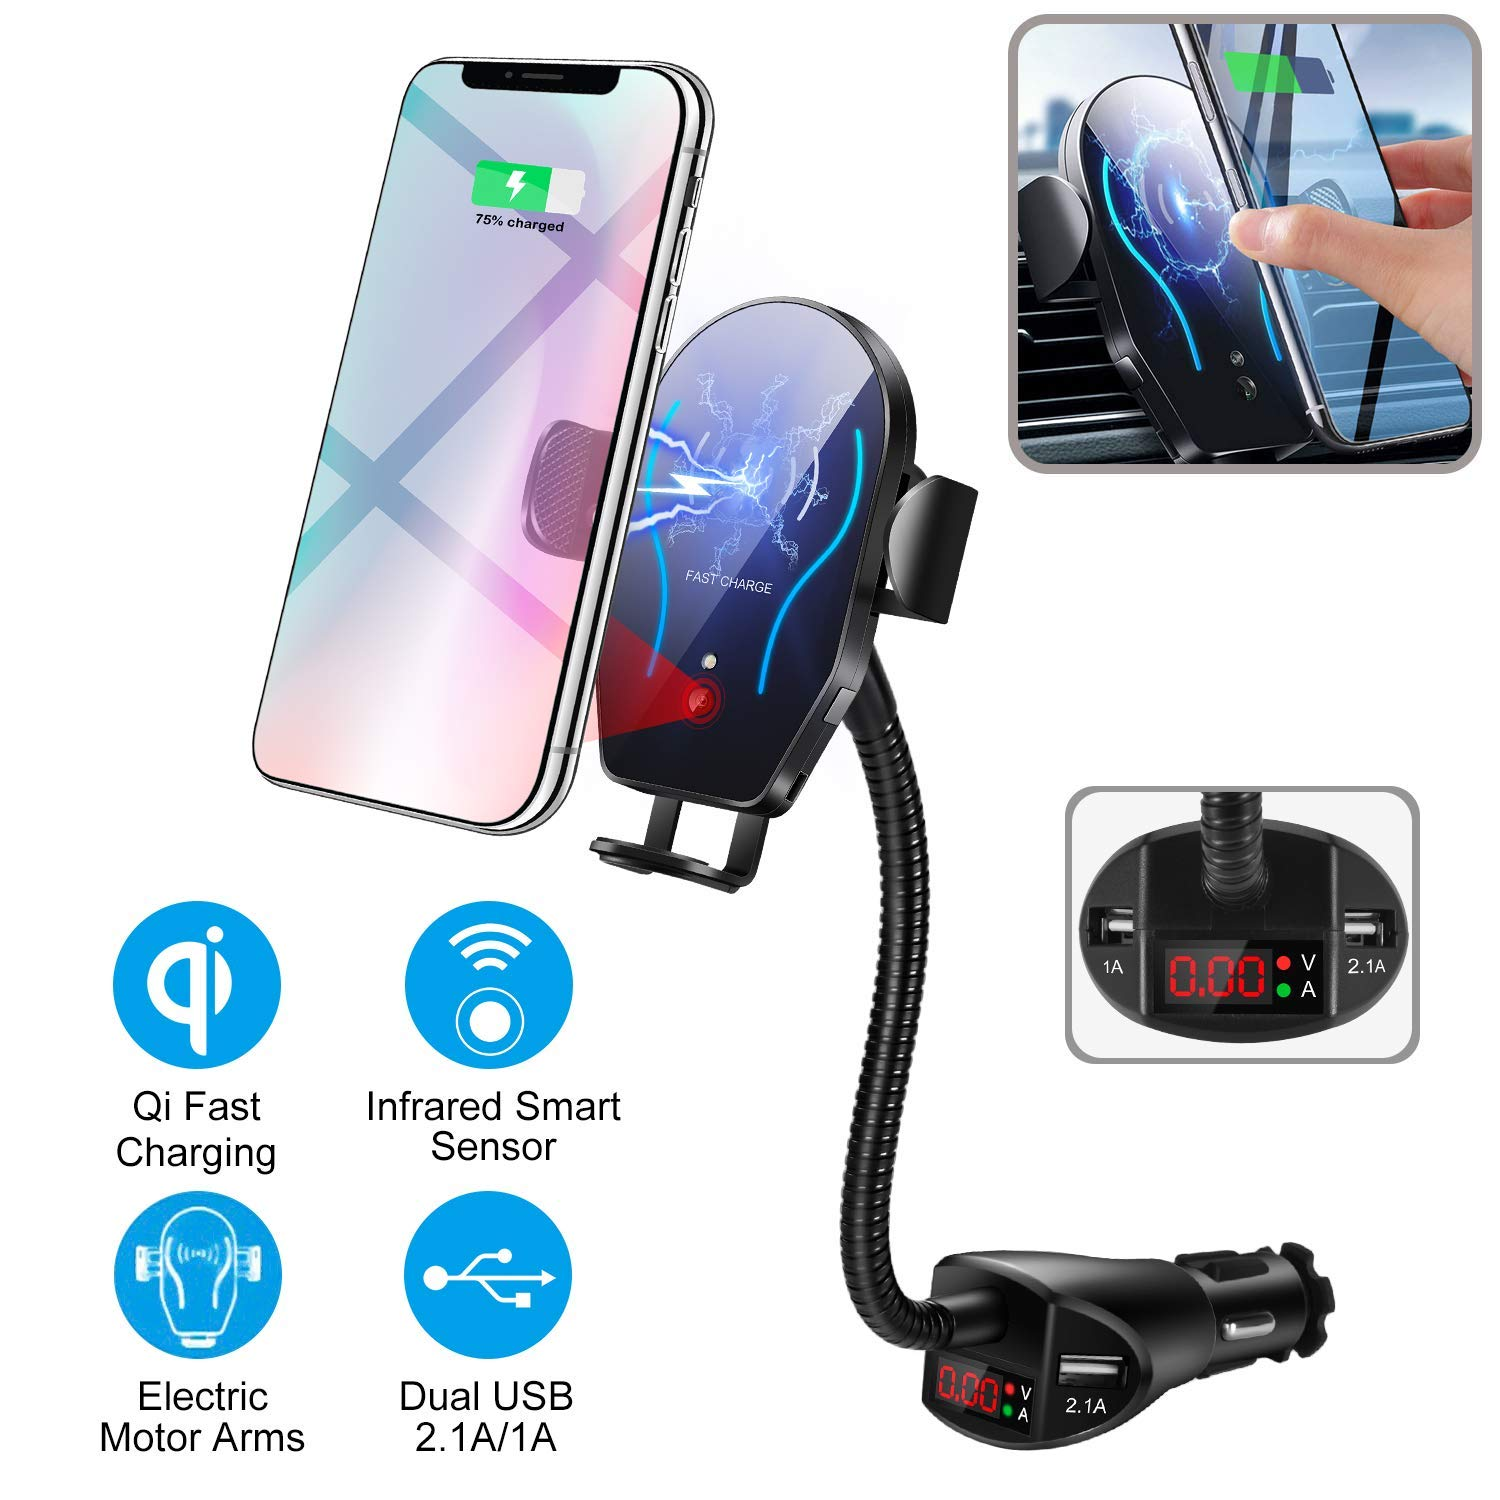 Flow.month Car Cigarette Lighter Wireless Charger- Phone Holder Mount,Automatic Infrared Smart Sensing 10W Qi Fast Wireless Charging Cradle for Cell Phone,Dual USB, 3.1A Max (Renewed) by Flow.month